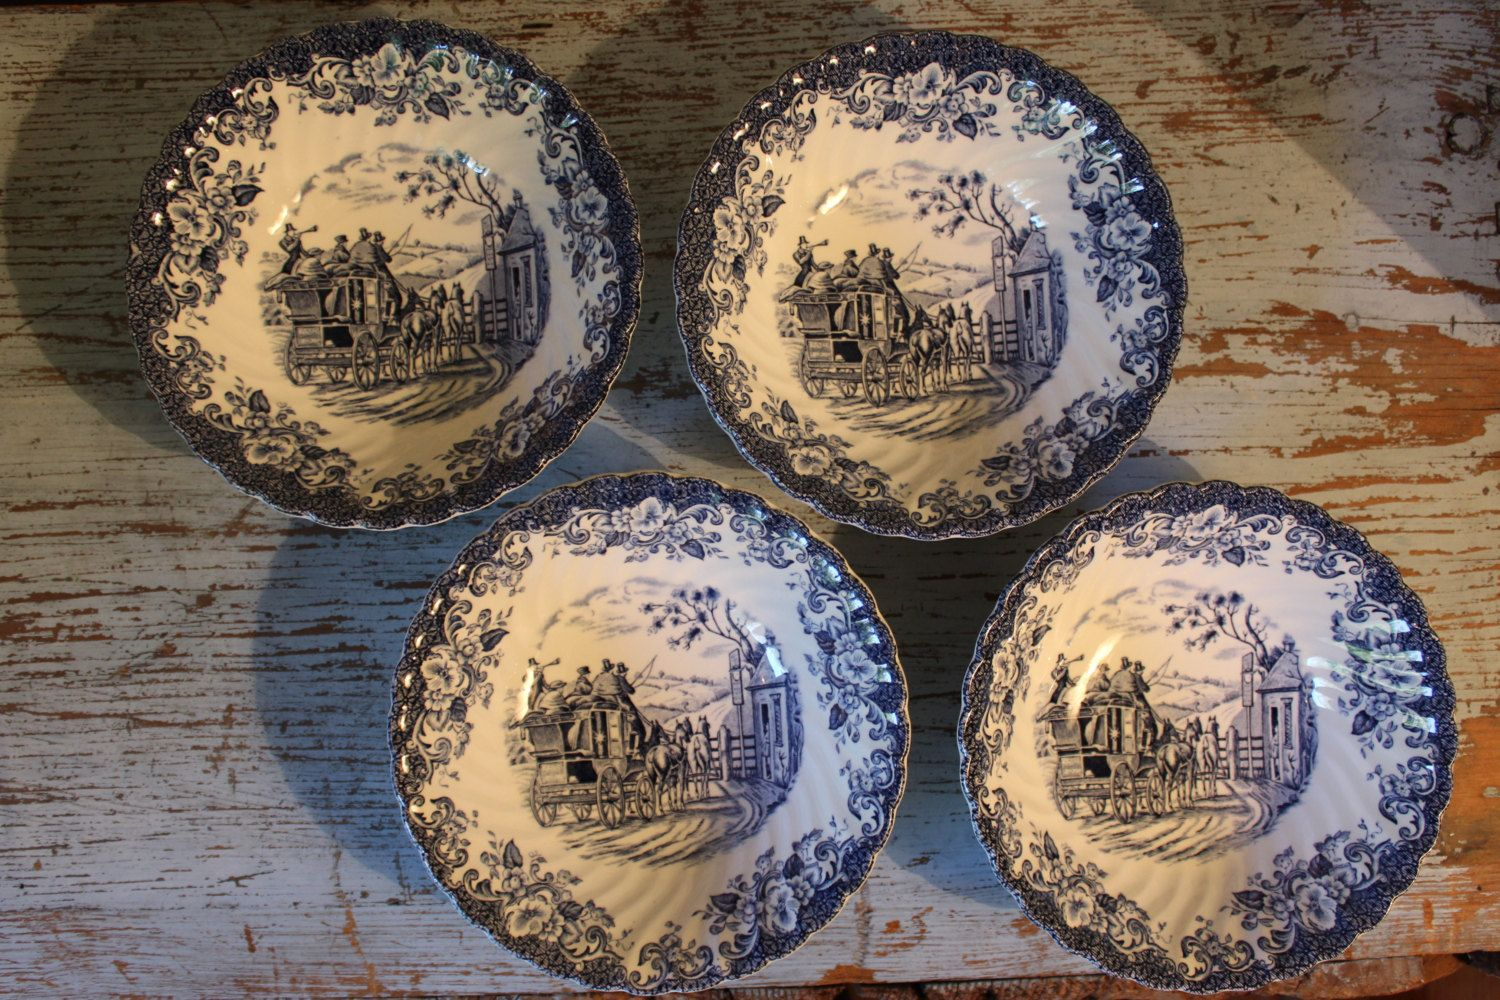 8 Vintage Coaching Scenes Dishes 4 Gatekeeper Cereal Bowls and 4 Hunting Country Bread and Butter Plates Johnson Bros Made in England by CottageBlu on Etsy